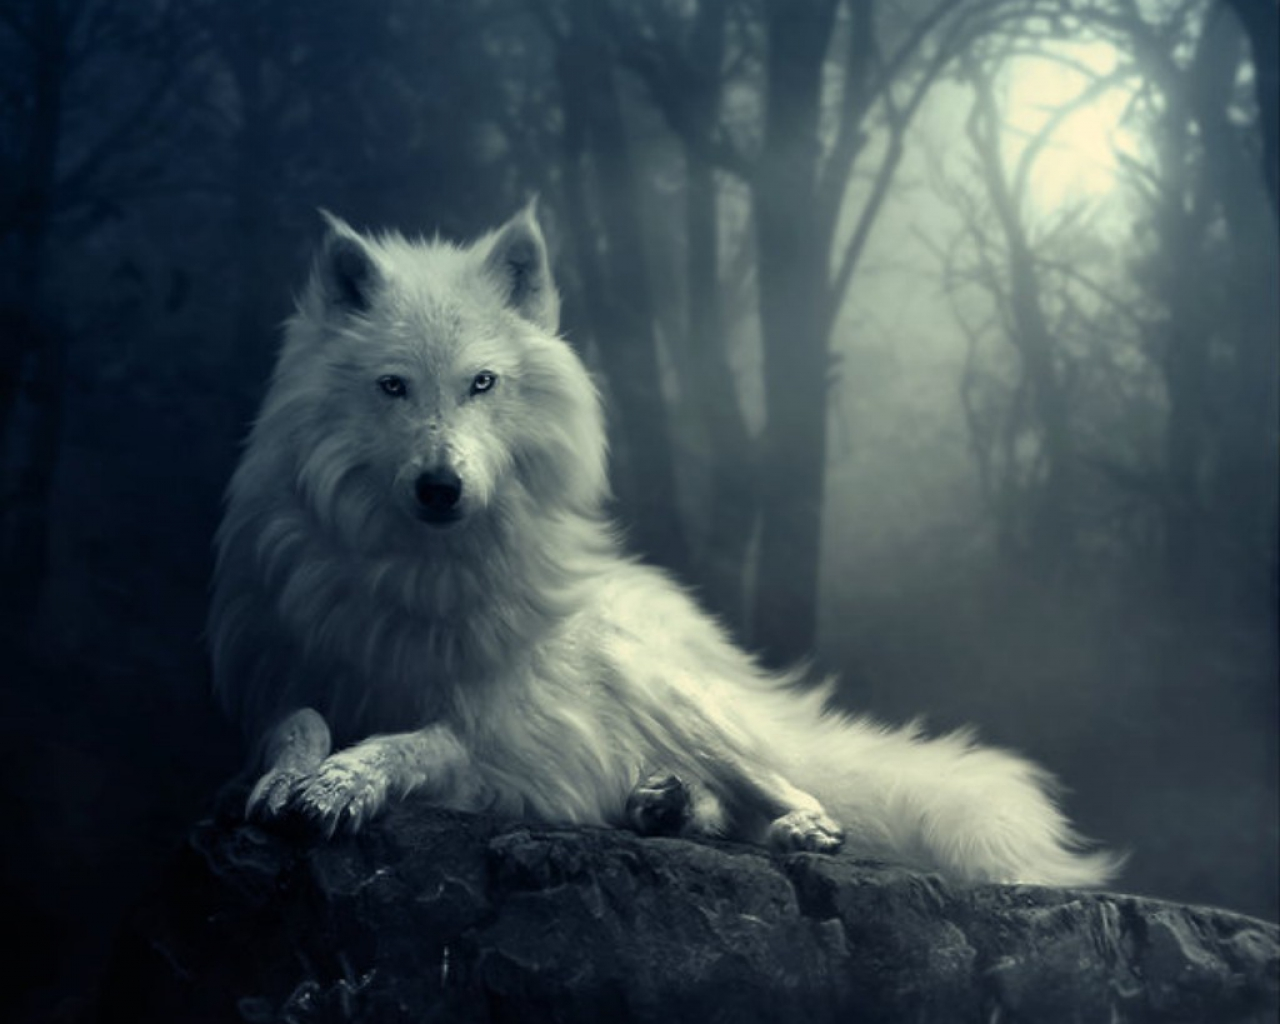 http://2.bp.blogspot.com/-h6FfHgAJ4ok/UBvC-B8ws8I/AAAAAAAAAFg/s66it9CBwk0/s1600/651807-1280x1024-wolf-in-the-dark.jpg